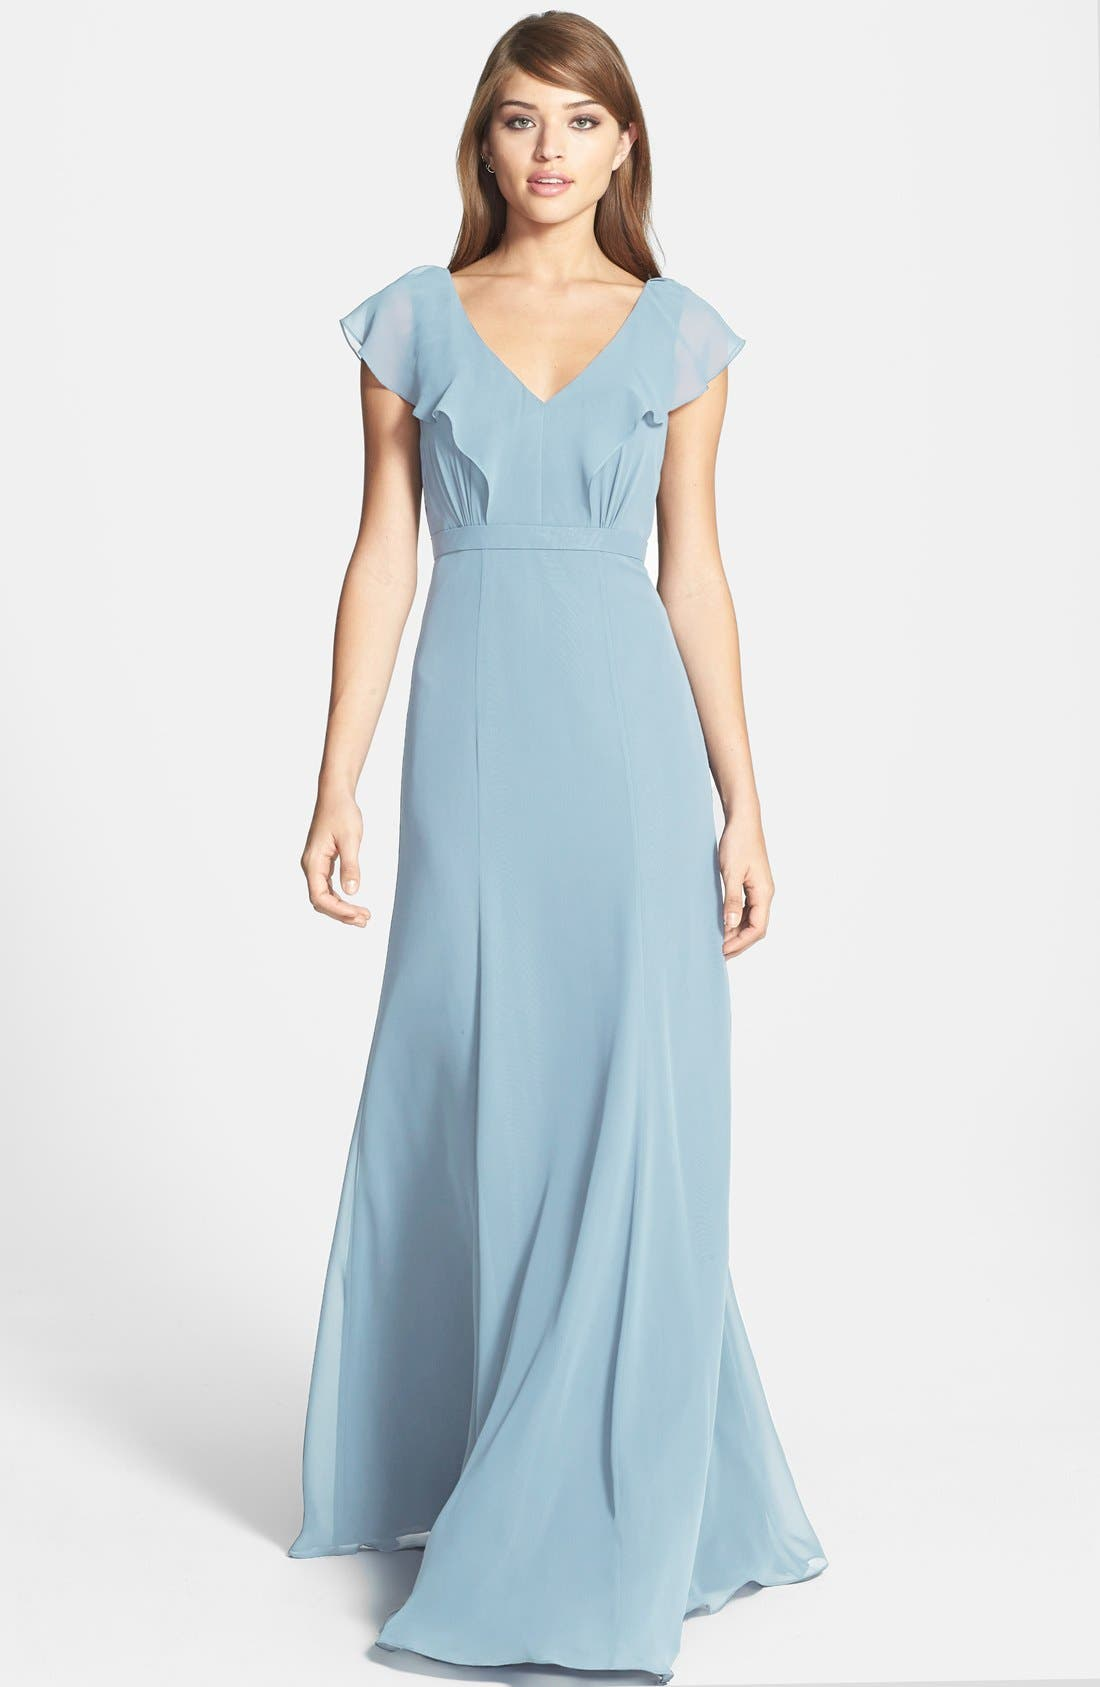 Alternate Image 1 Selected - Jenny Yoo 'Cecilia' Ruffled V-Neck Chiffon Long Dress (Online Only)